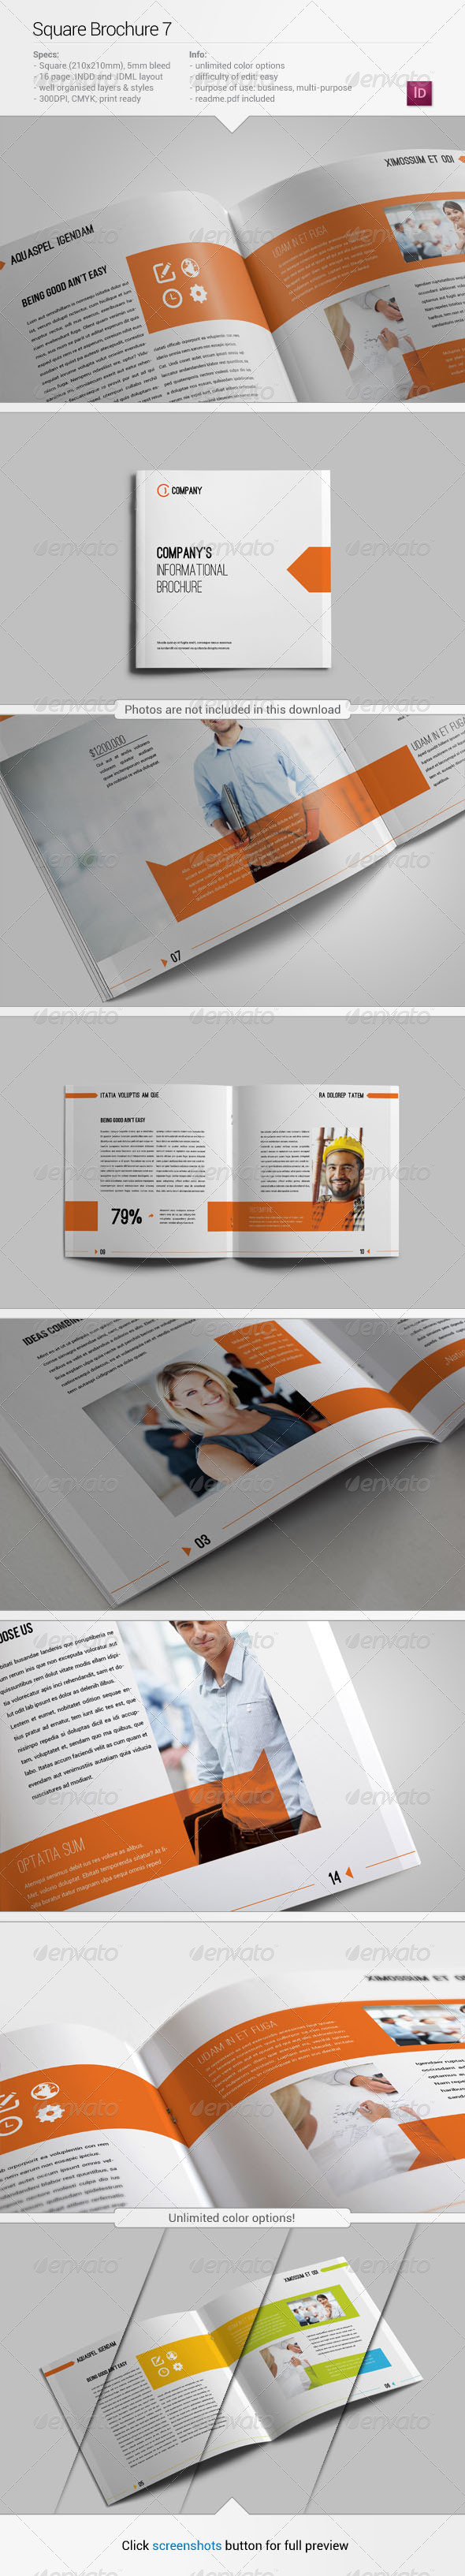 Square Brochure 7 - Corporate Brochures